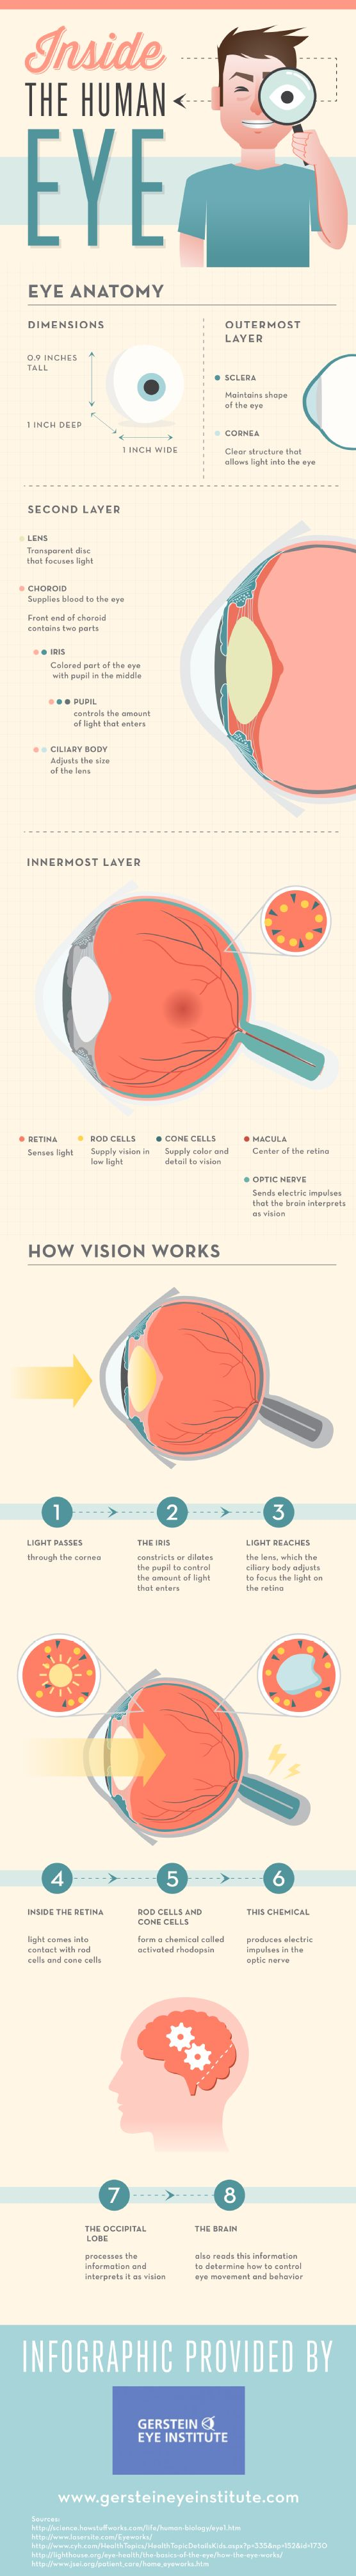 The retina is located in the innermost layer of the eye and senses light. Rod cells in the retina supply vision in low light, while cone cells in the